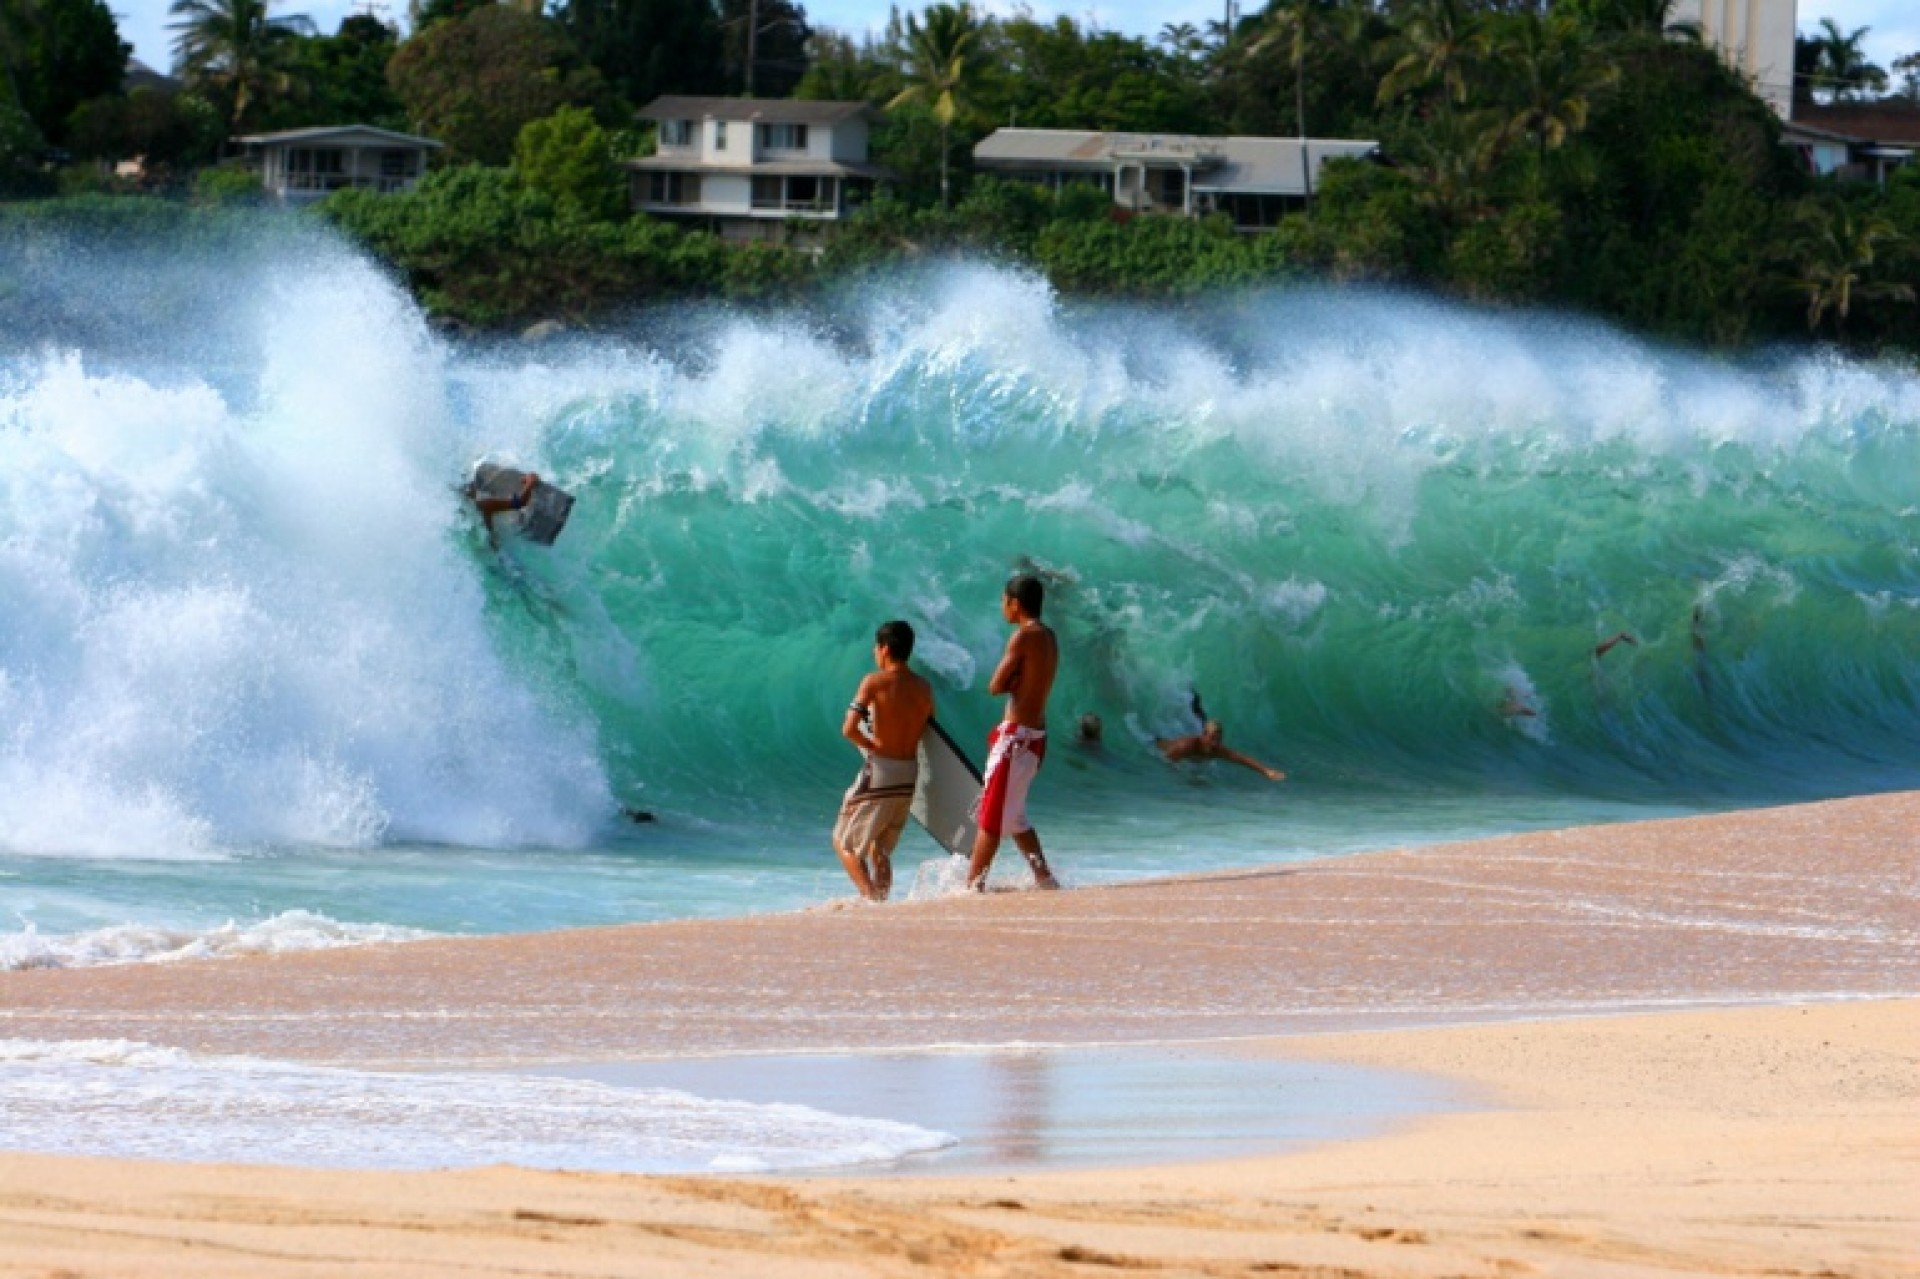 DigitalQuiver's photo of Waimea Bay